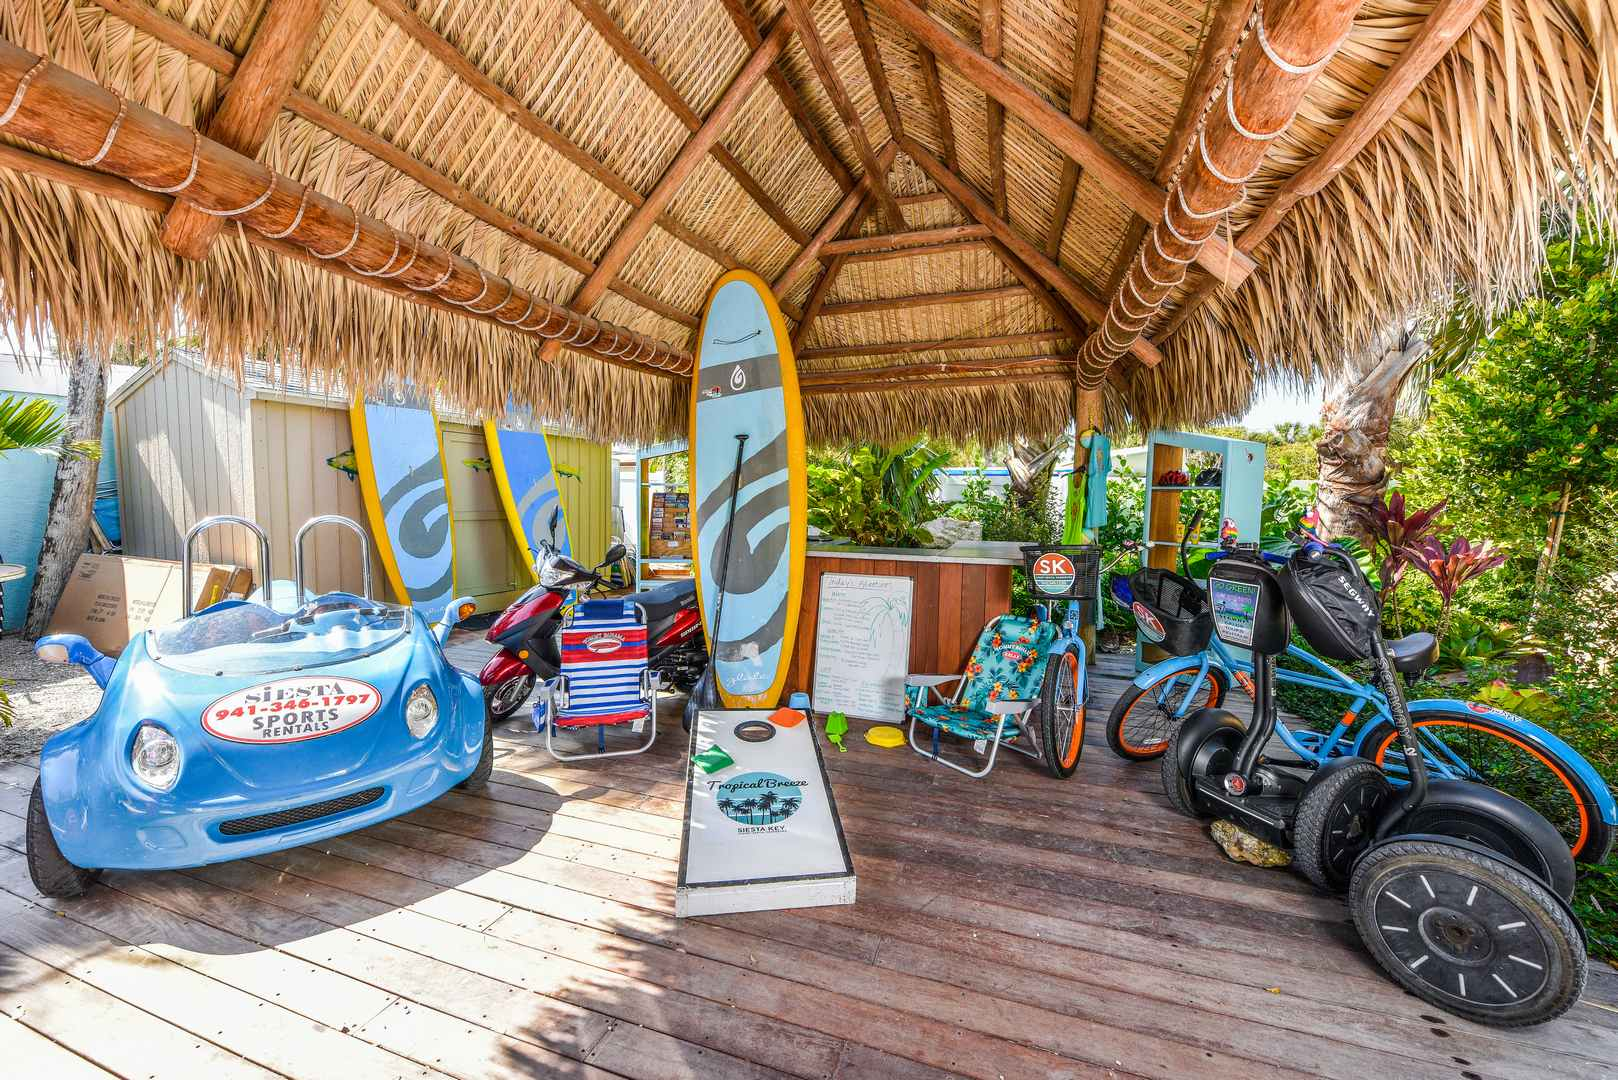 Great activities to book at the Adventure Tiki